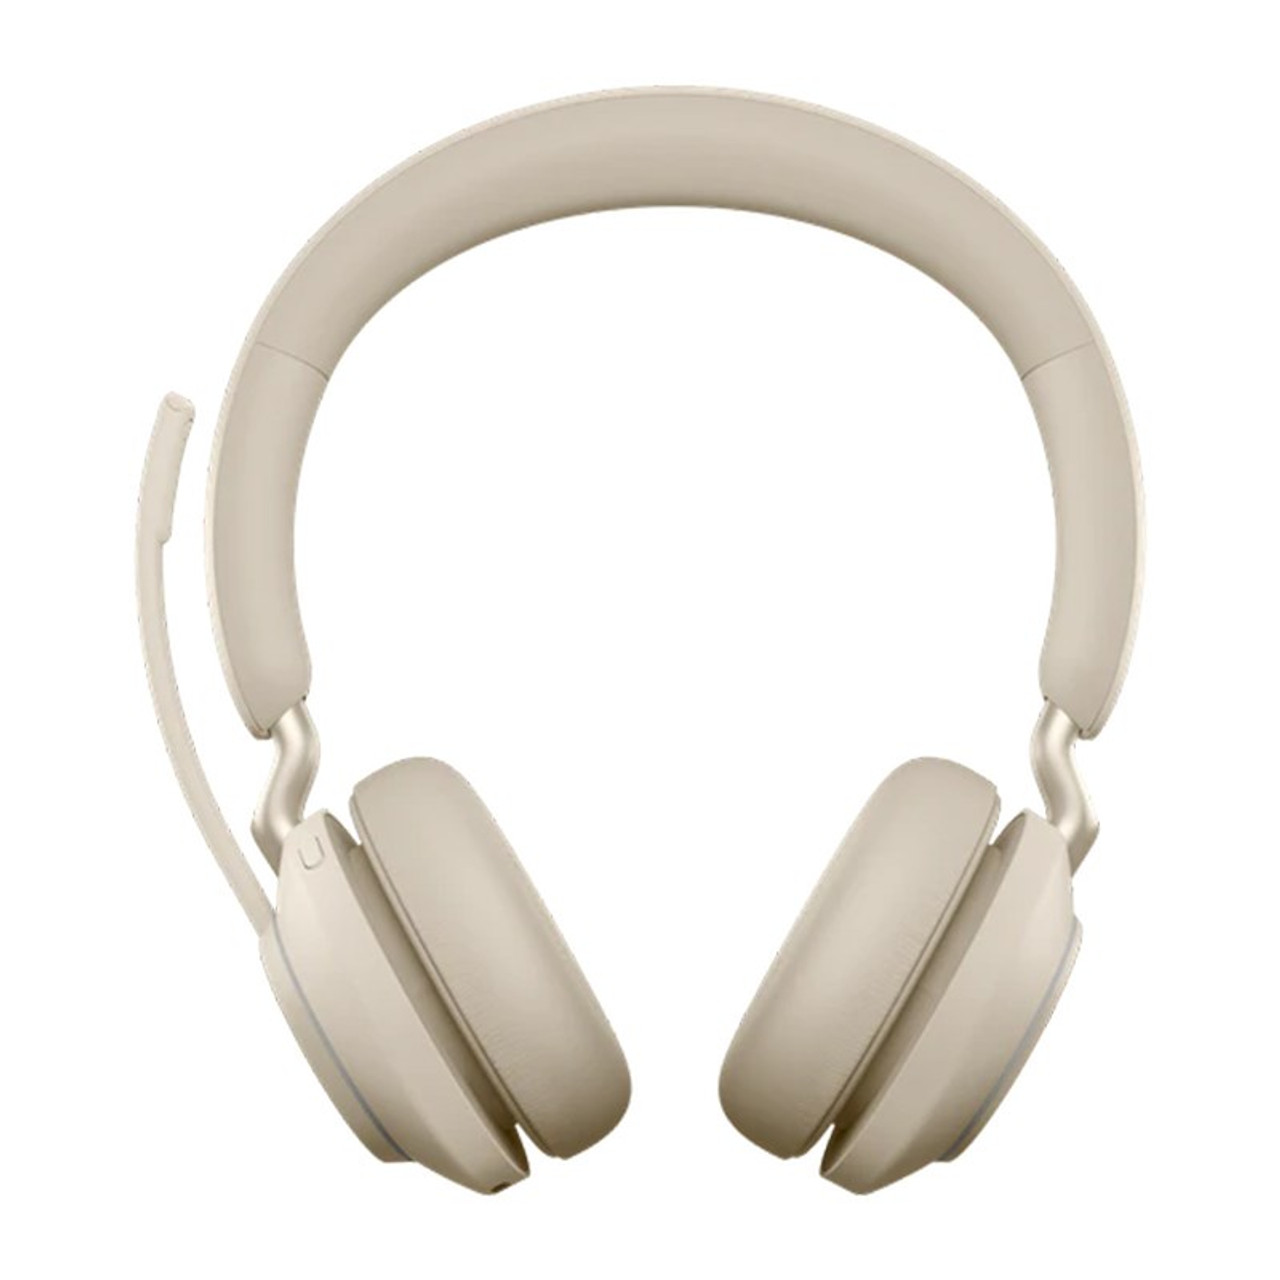 Image for Jabra Evolve2 65 UC USB-C Stereo Bluetooth Headset - Beige CX Computer Superstore